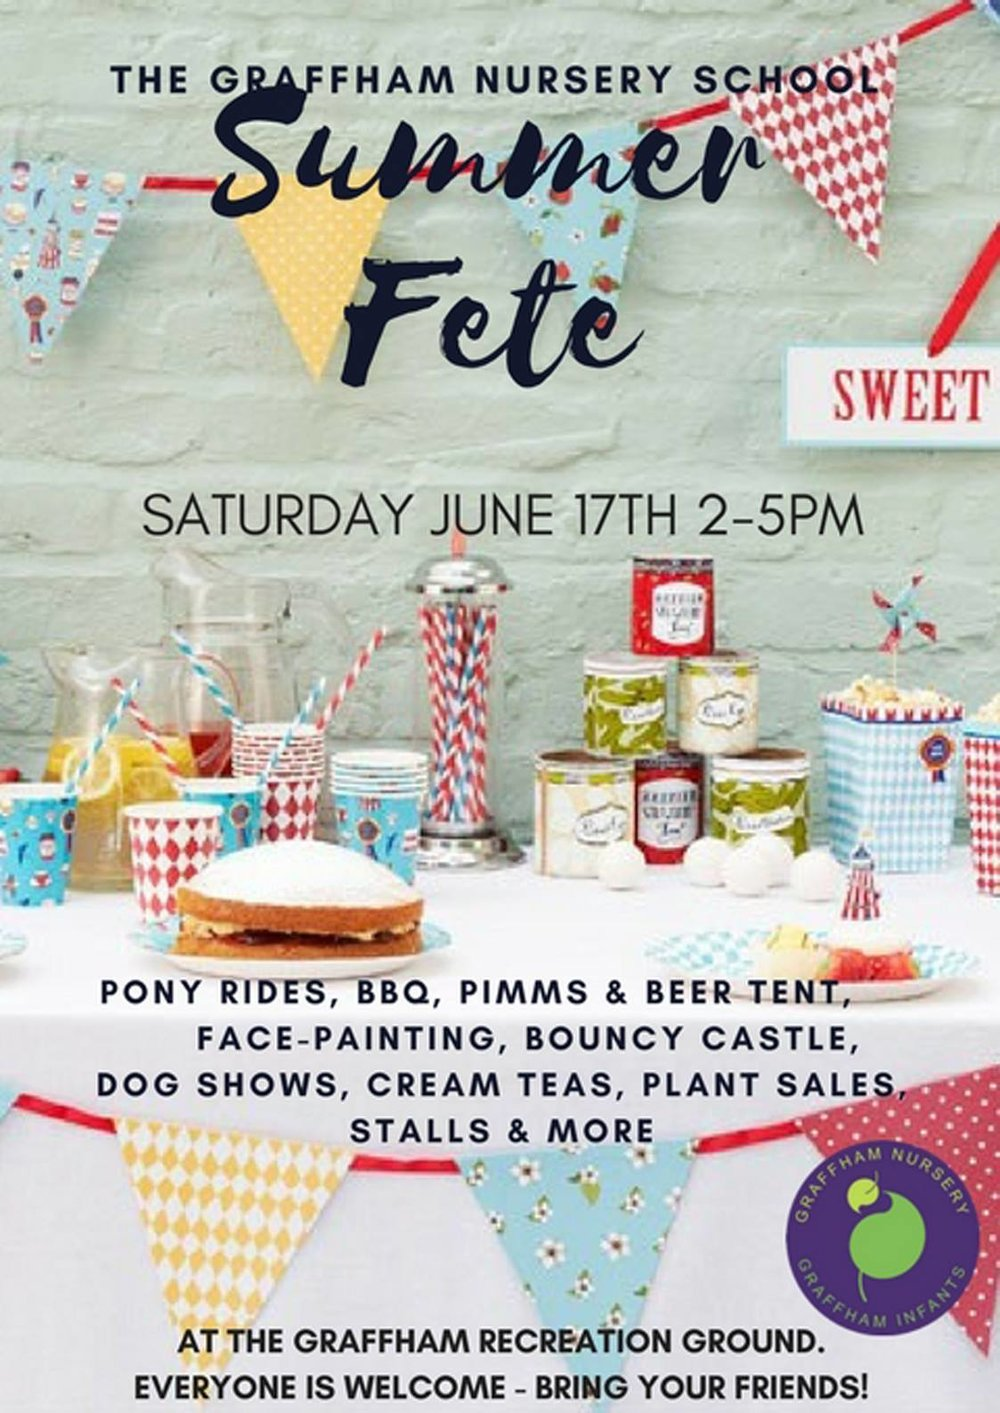 Summer Fete - Graffham Nursery School